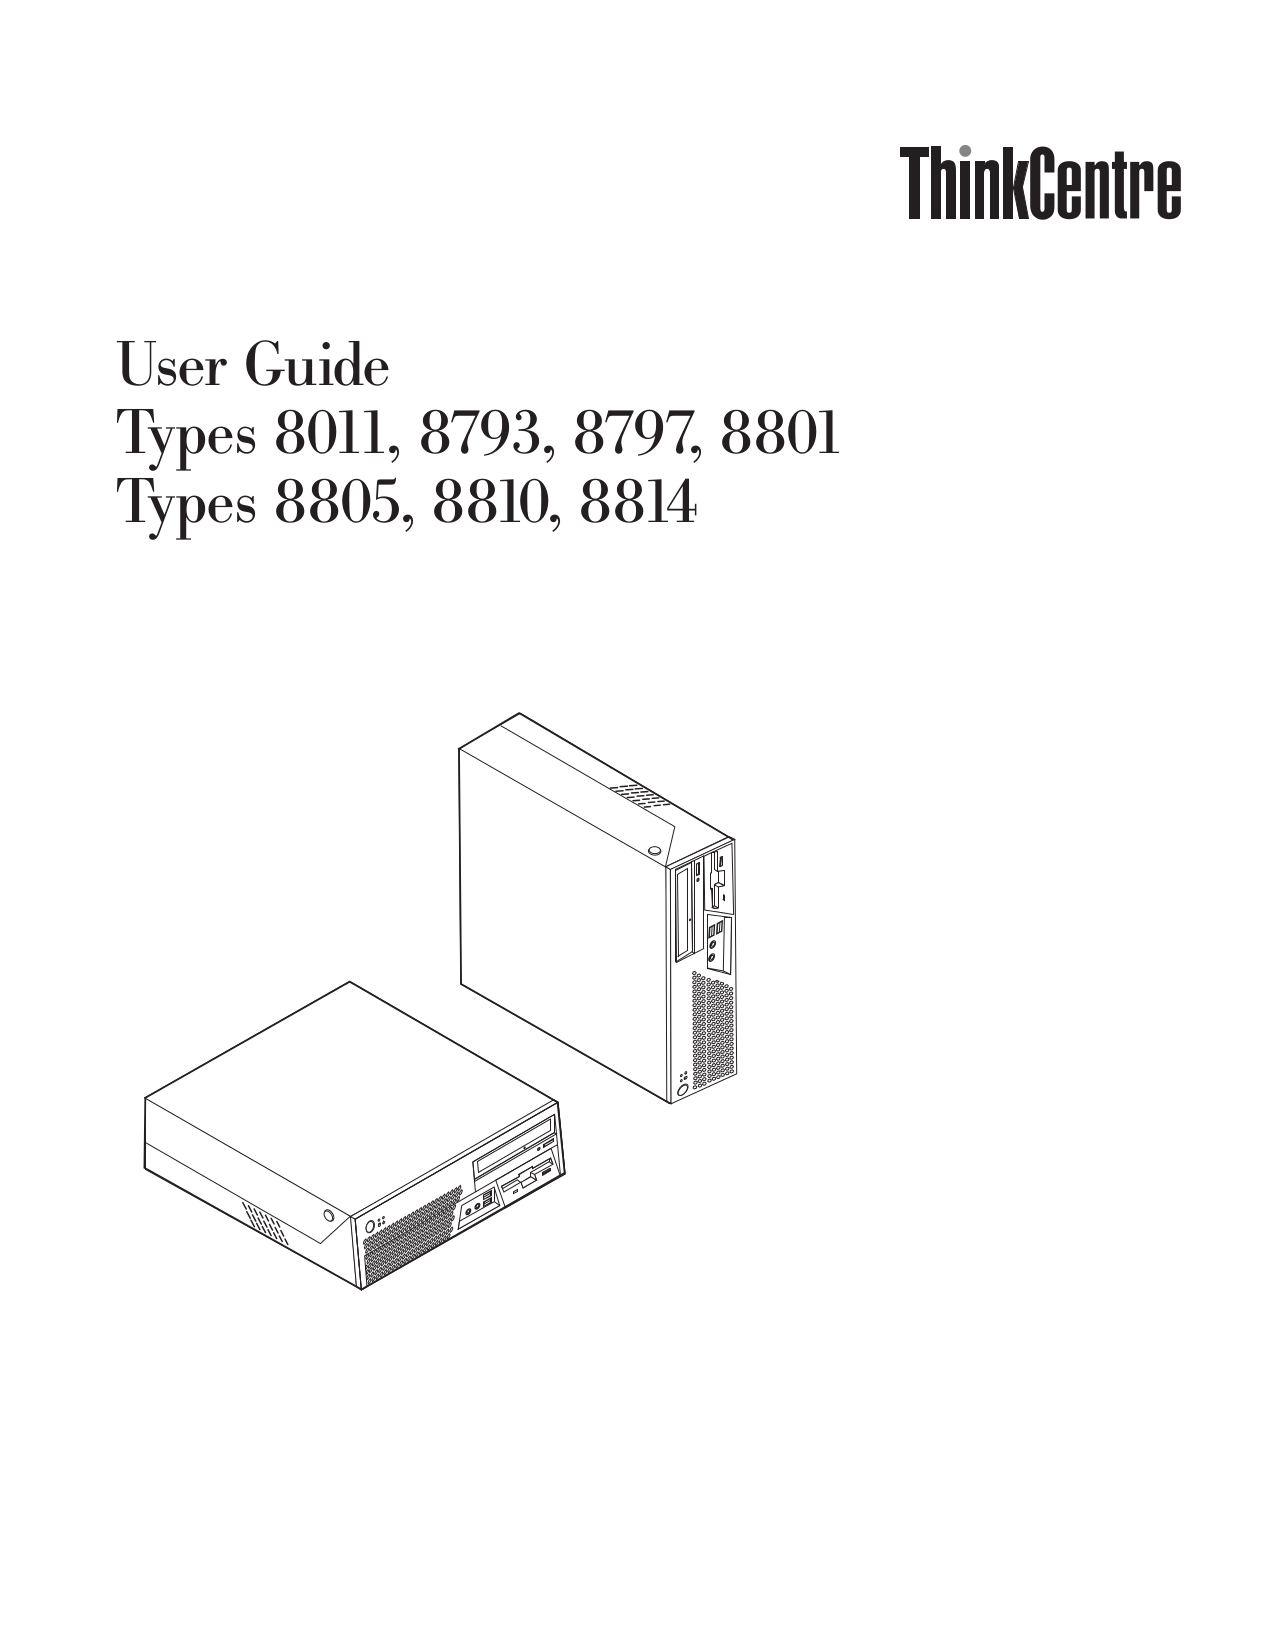 pdf for Lenovo Desktop ThinkCentre M55 8810 manual